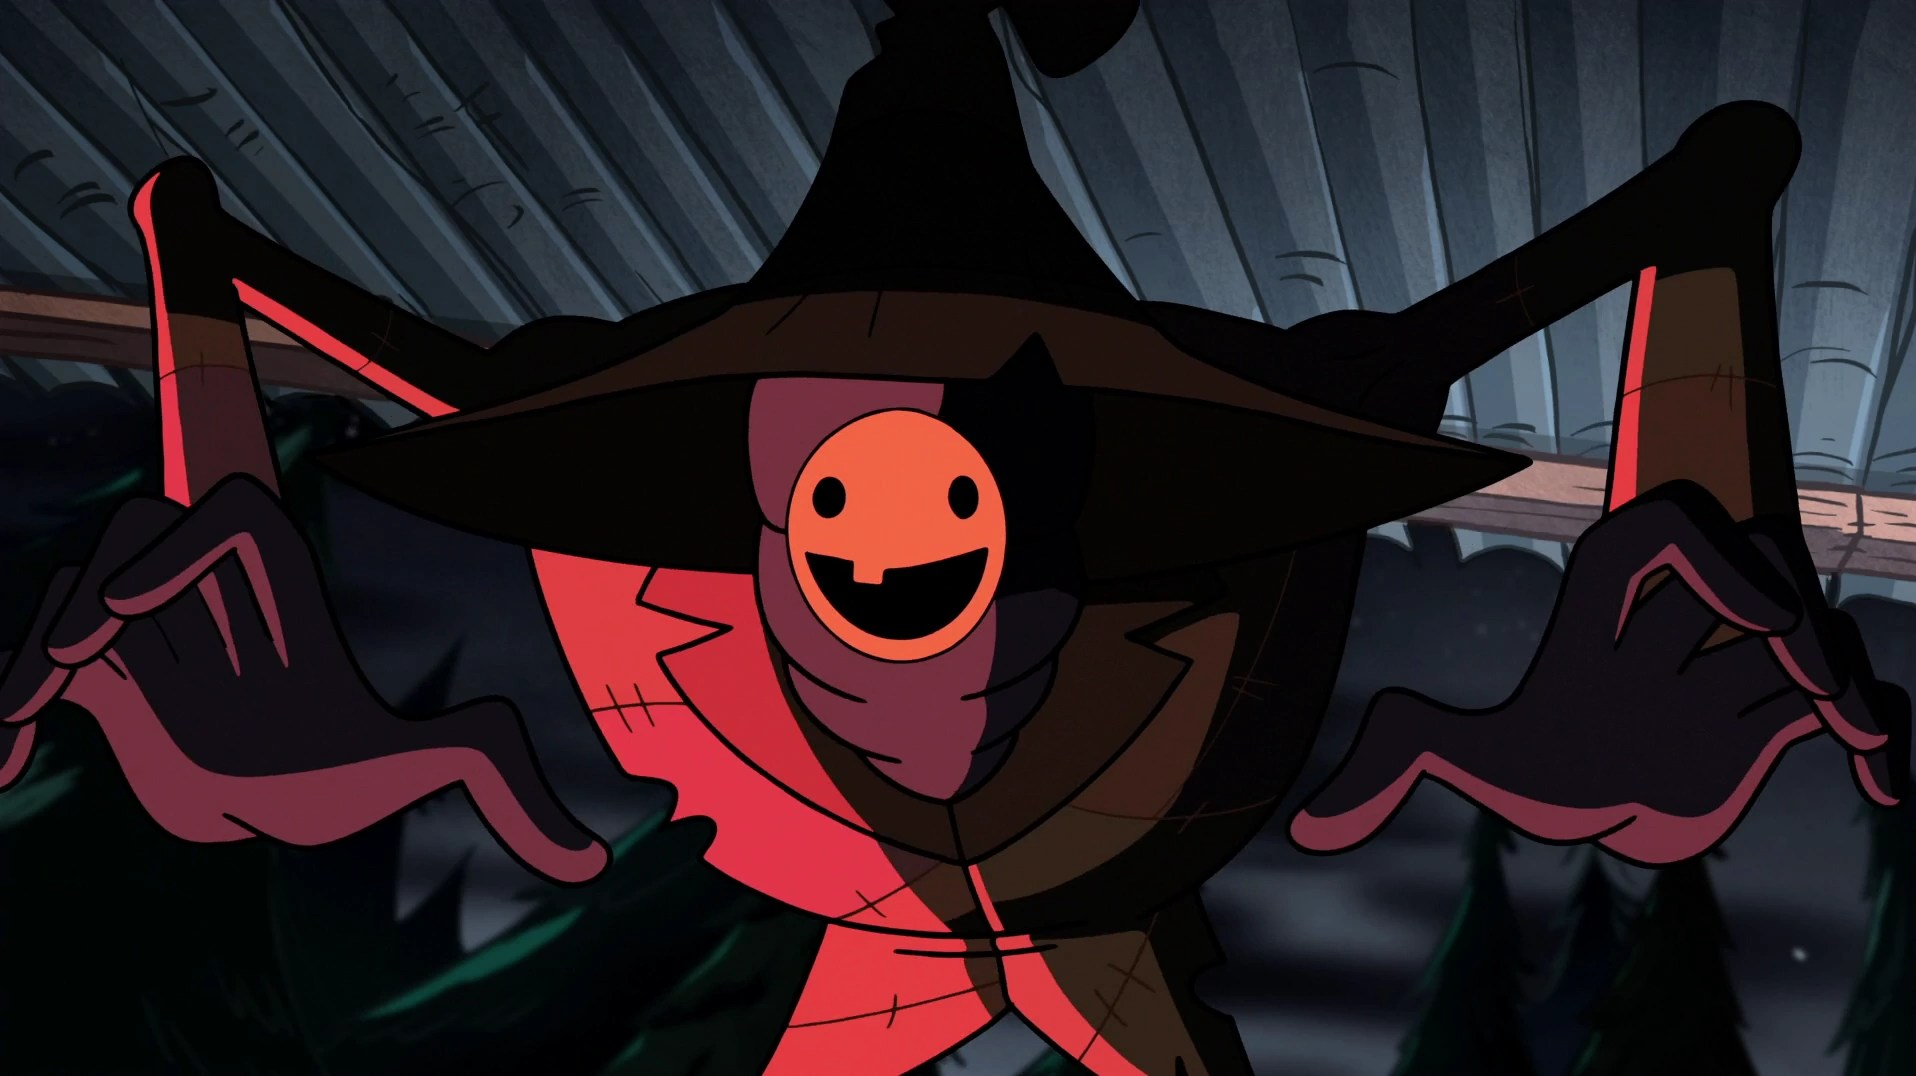 https://i2.wp.com/img3.wikia.nocookie.net/__cb20121021064107/gravityfalls/images/6/61/S1e12_summerween_trickster_at_door.png